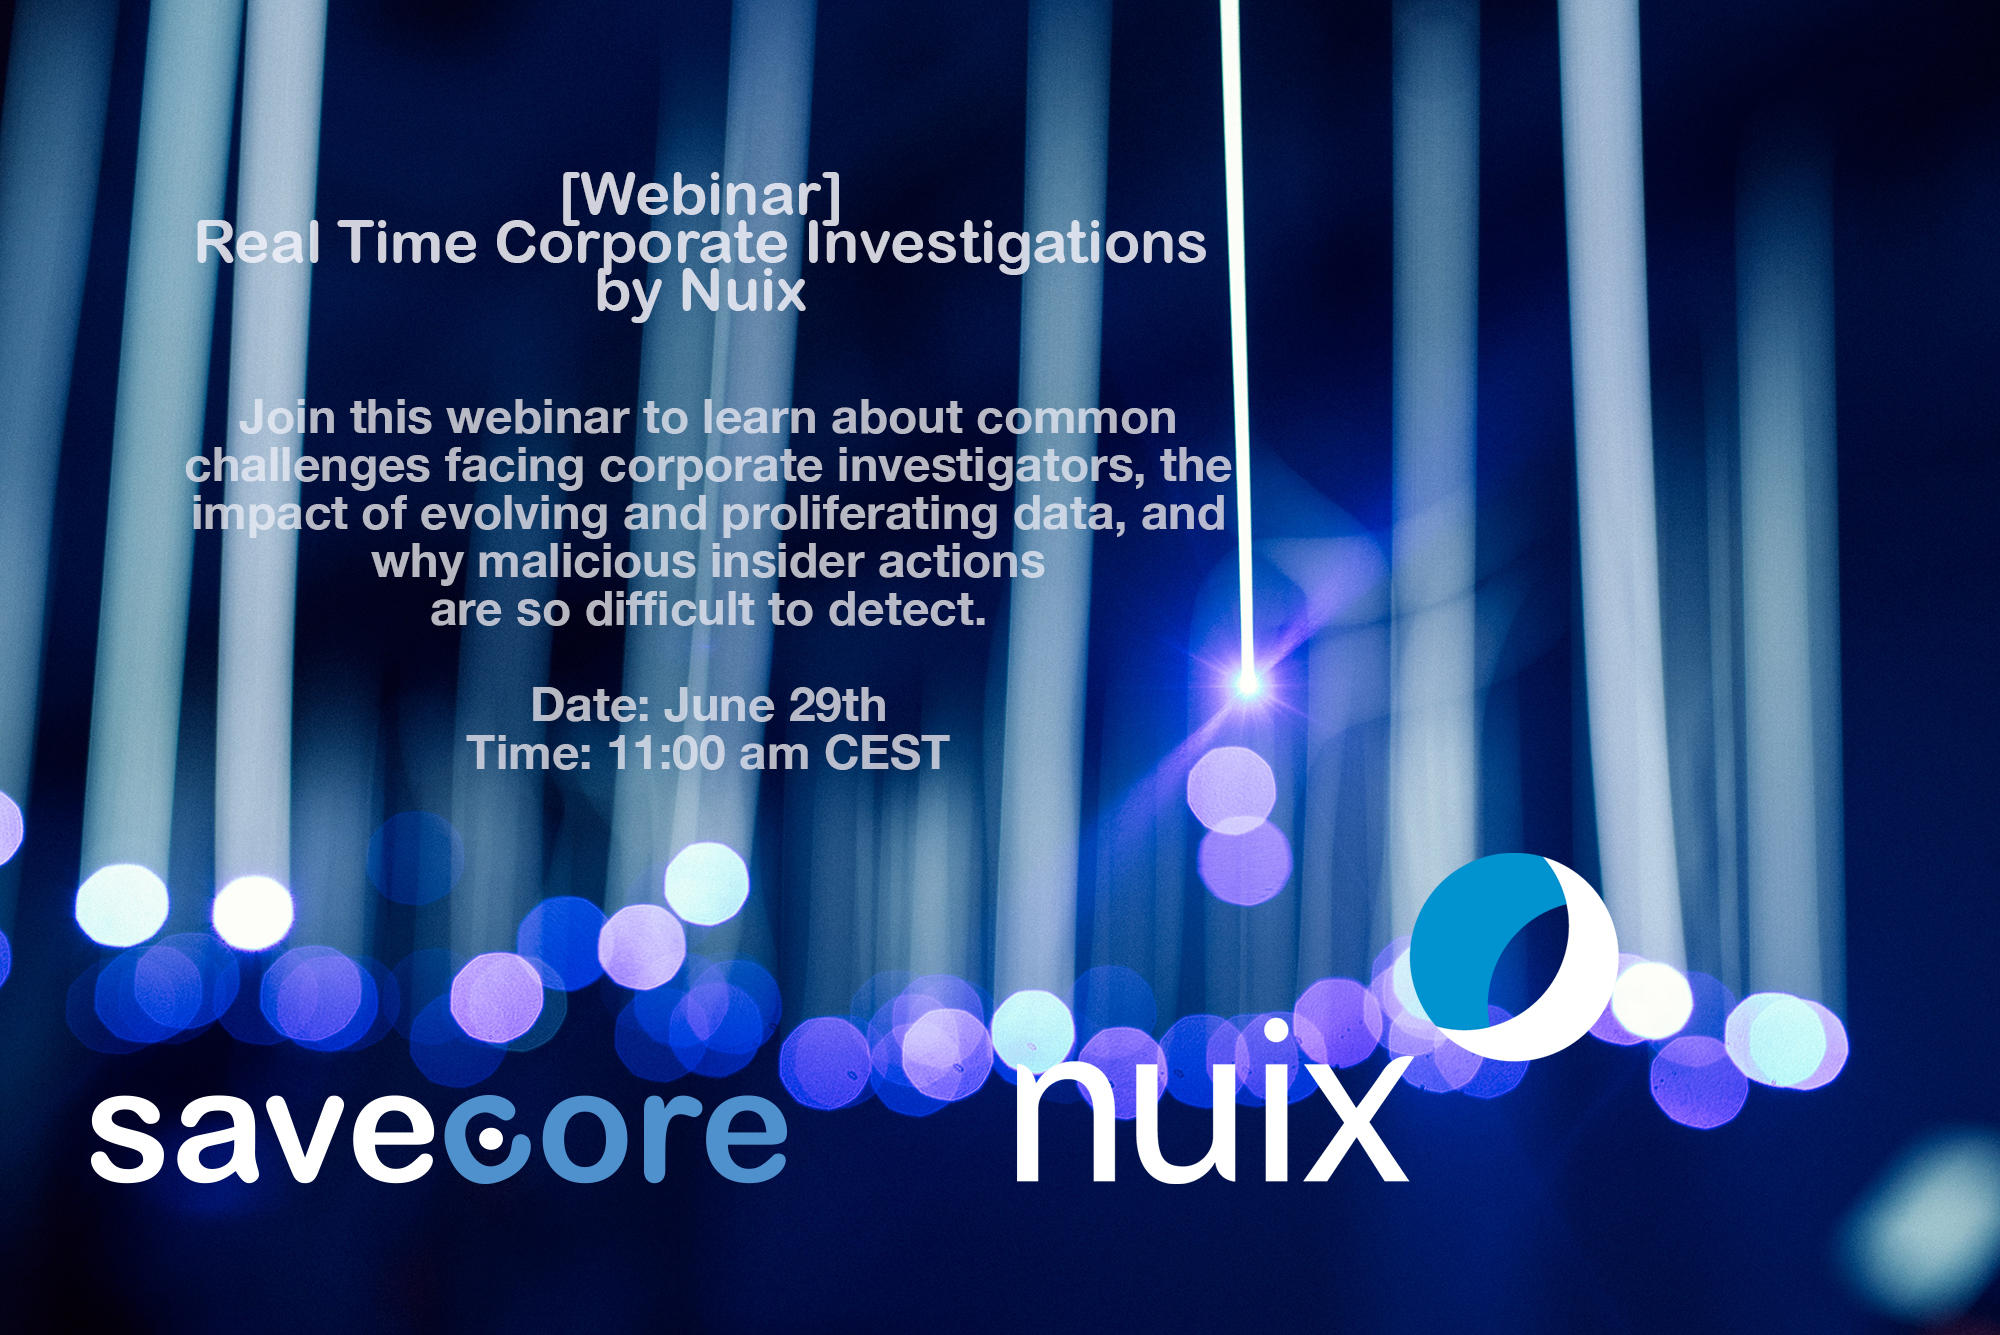 [Webinar] Real Time Corporate Investigations